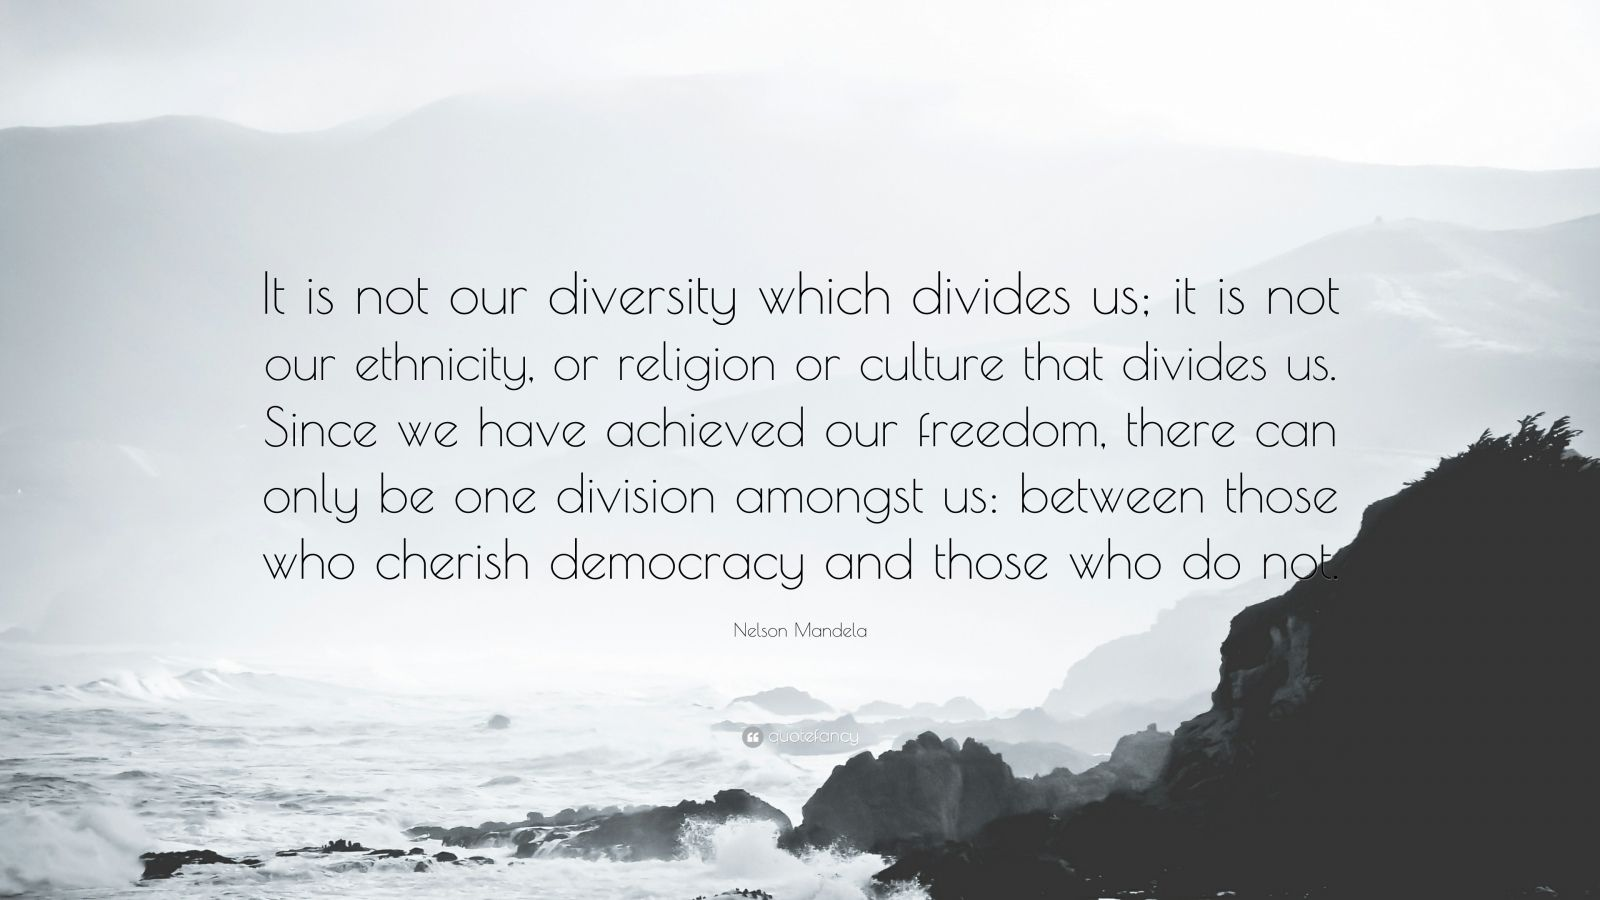 """Nelson Mandela Quote: """"It is not our diversity which divides us; it is not our ethnicity, or religion or culture that divides us. Since we have achieved our freedom, there can only be one division amongst us: between those who cherish democracy and those who do not."""""""